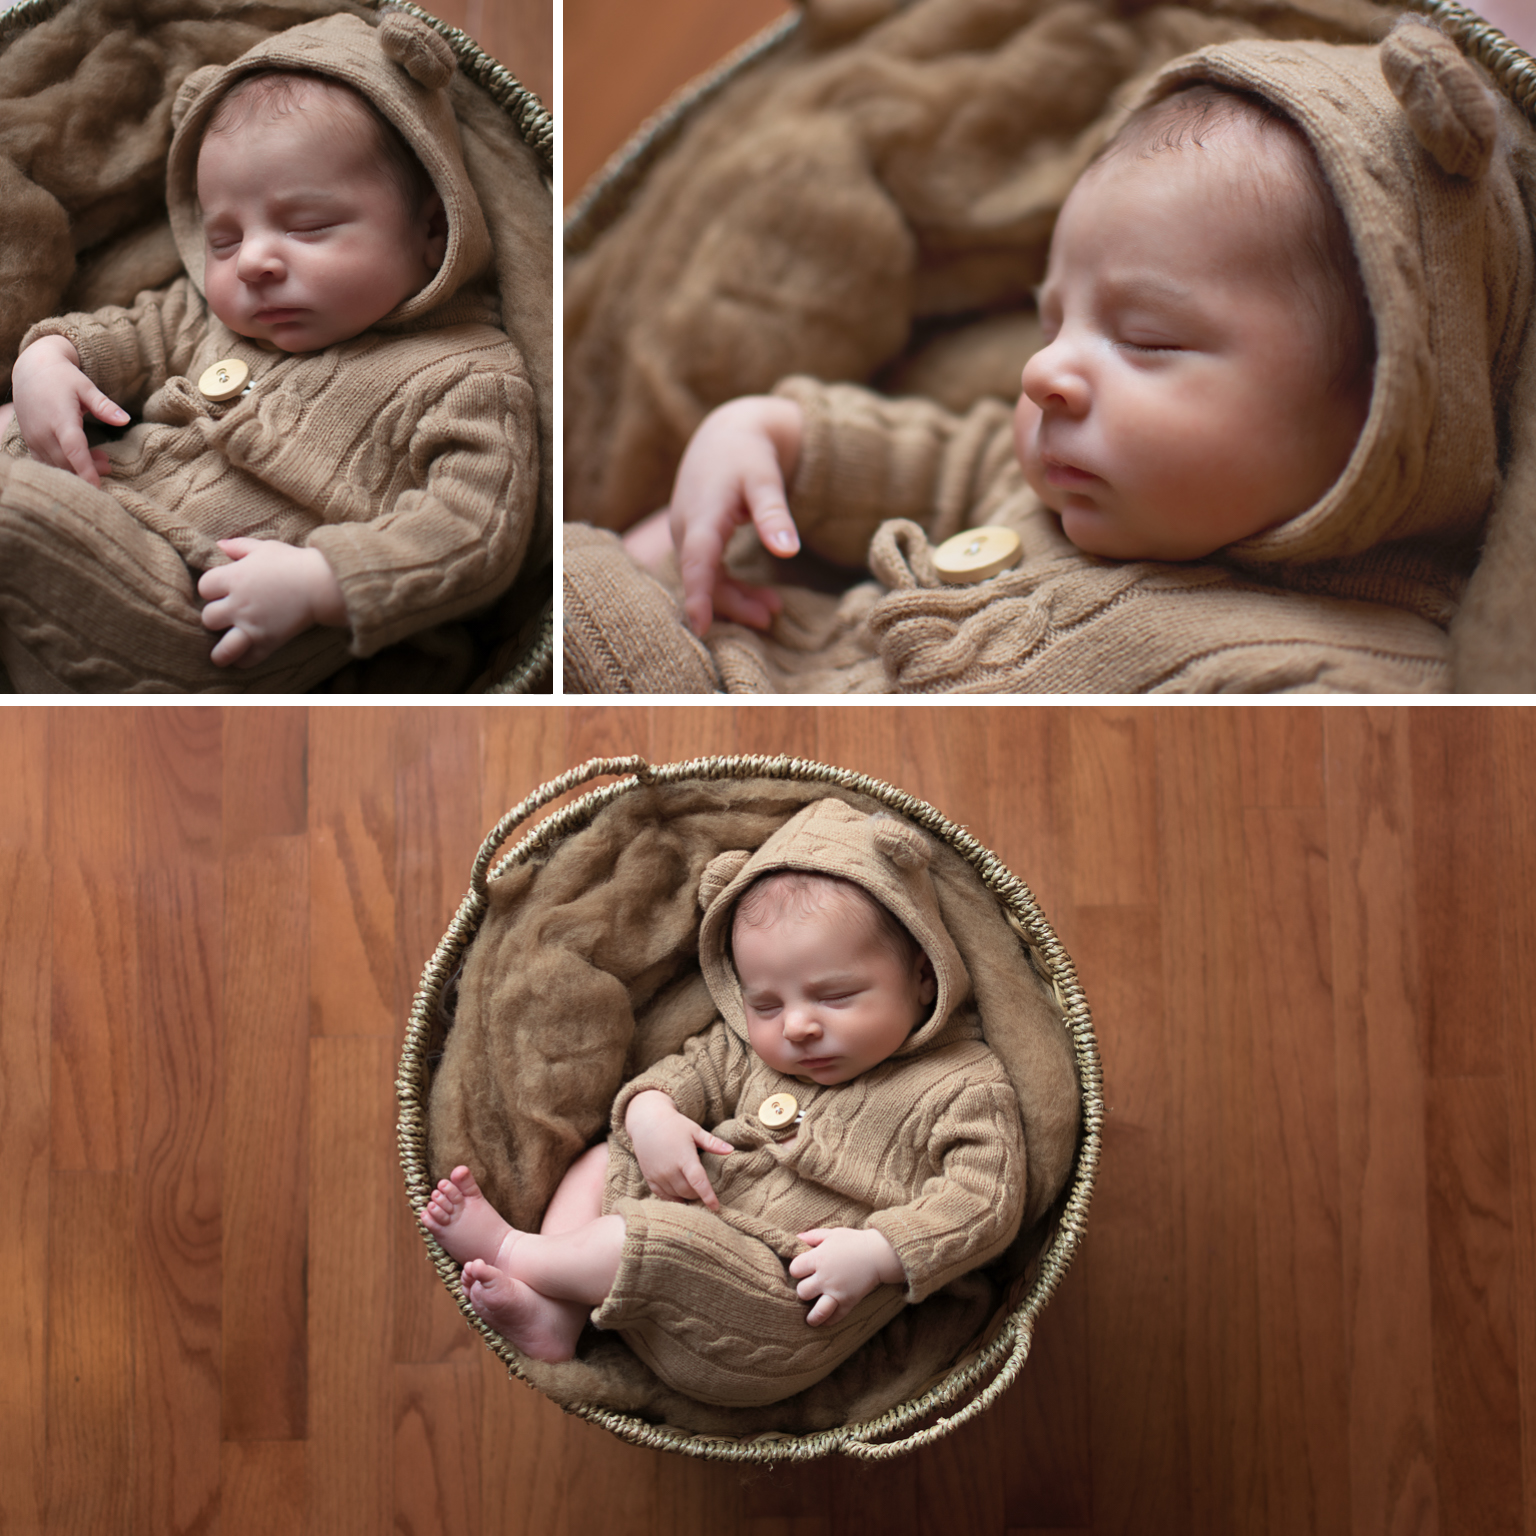 Baby Elijah Williamsport pa newborn photographer in home newborn session baby boy neutral colors bear connet baby in basket newborn outfit